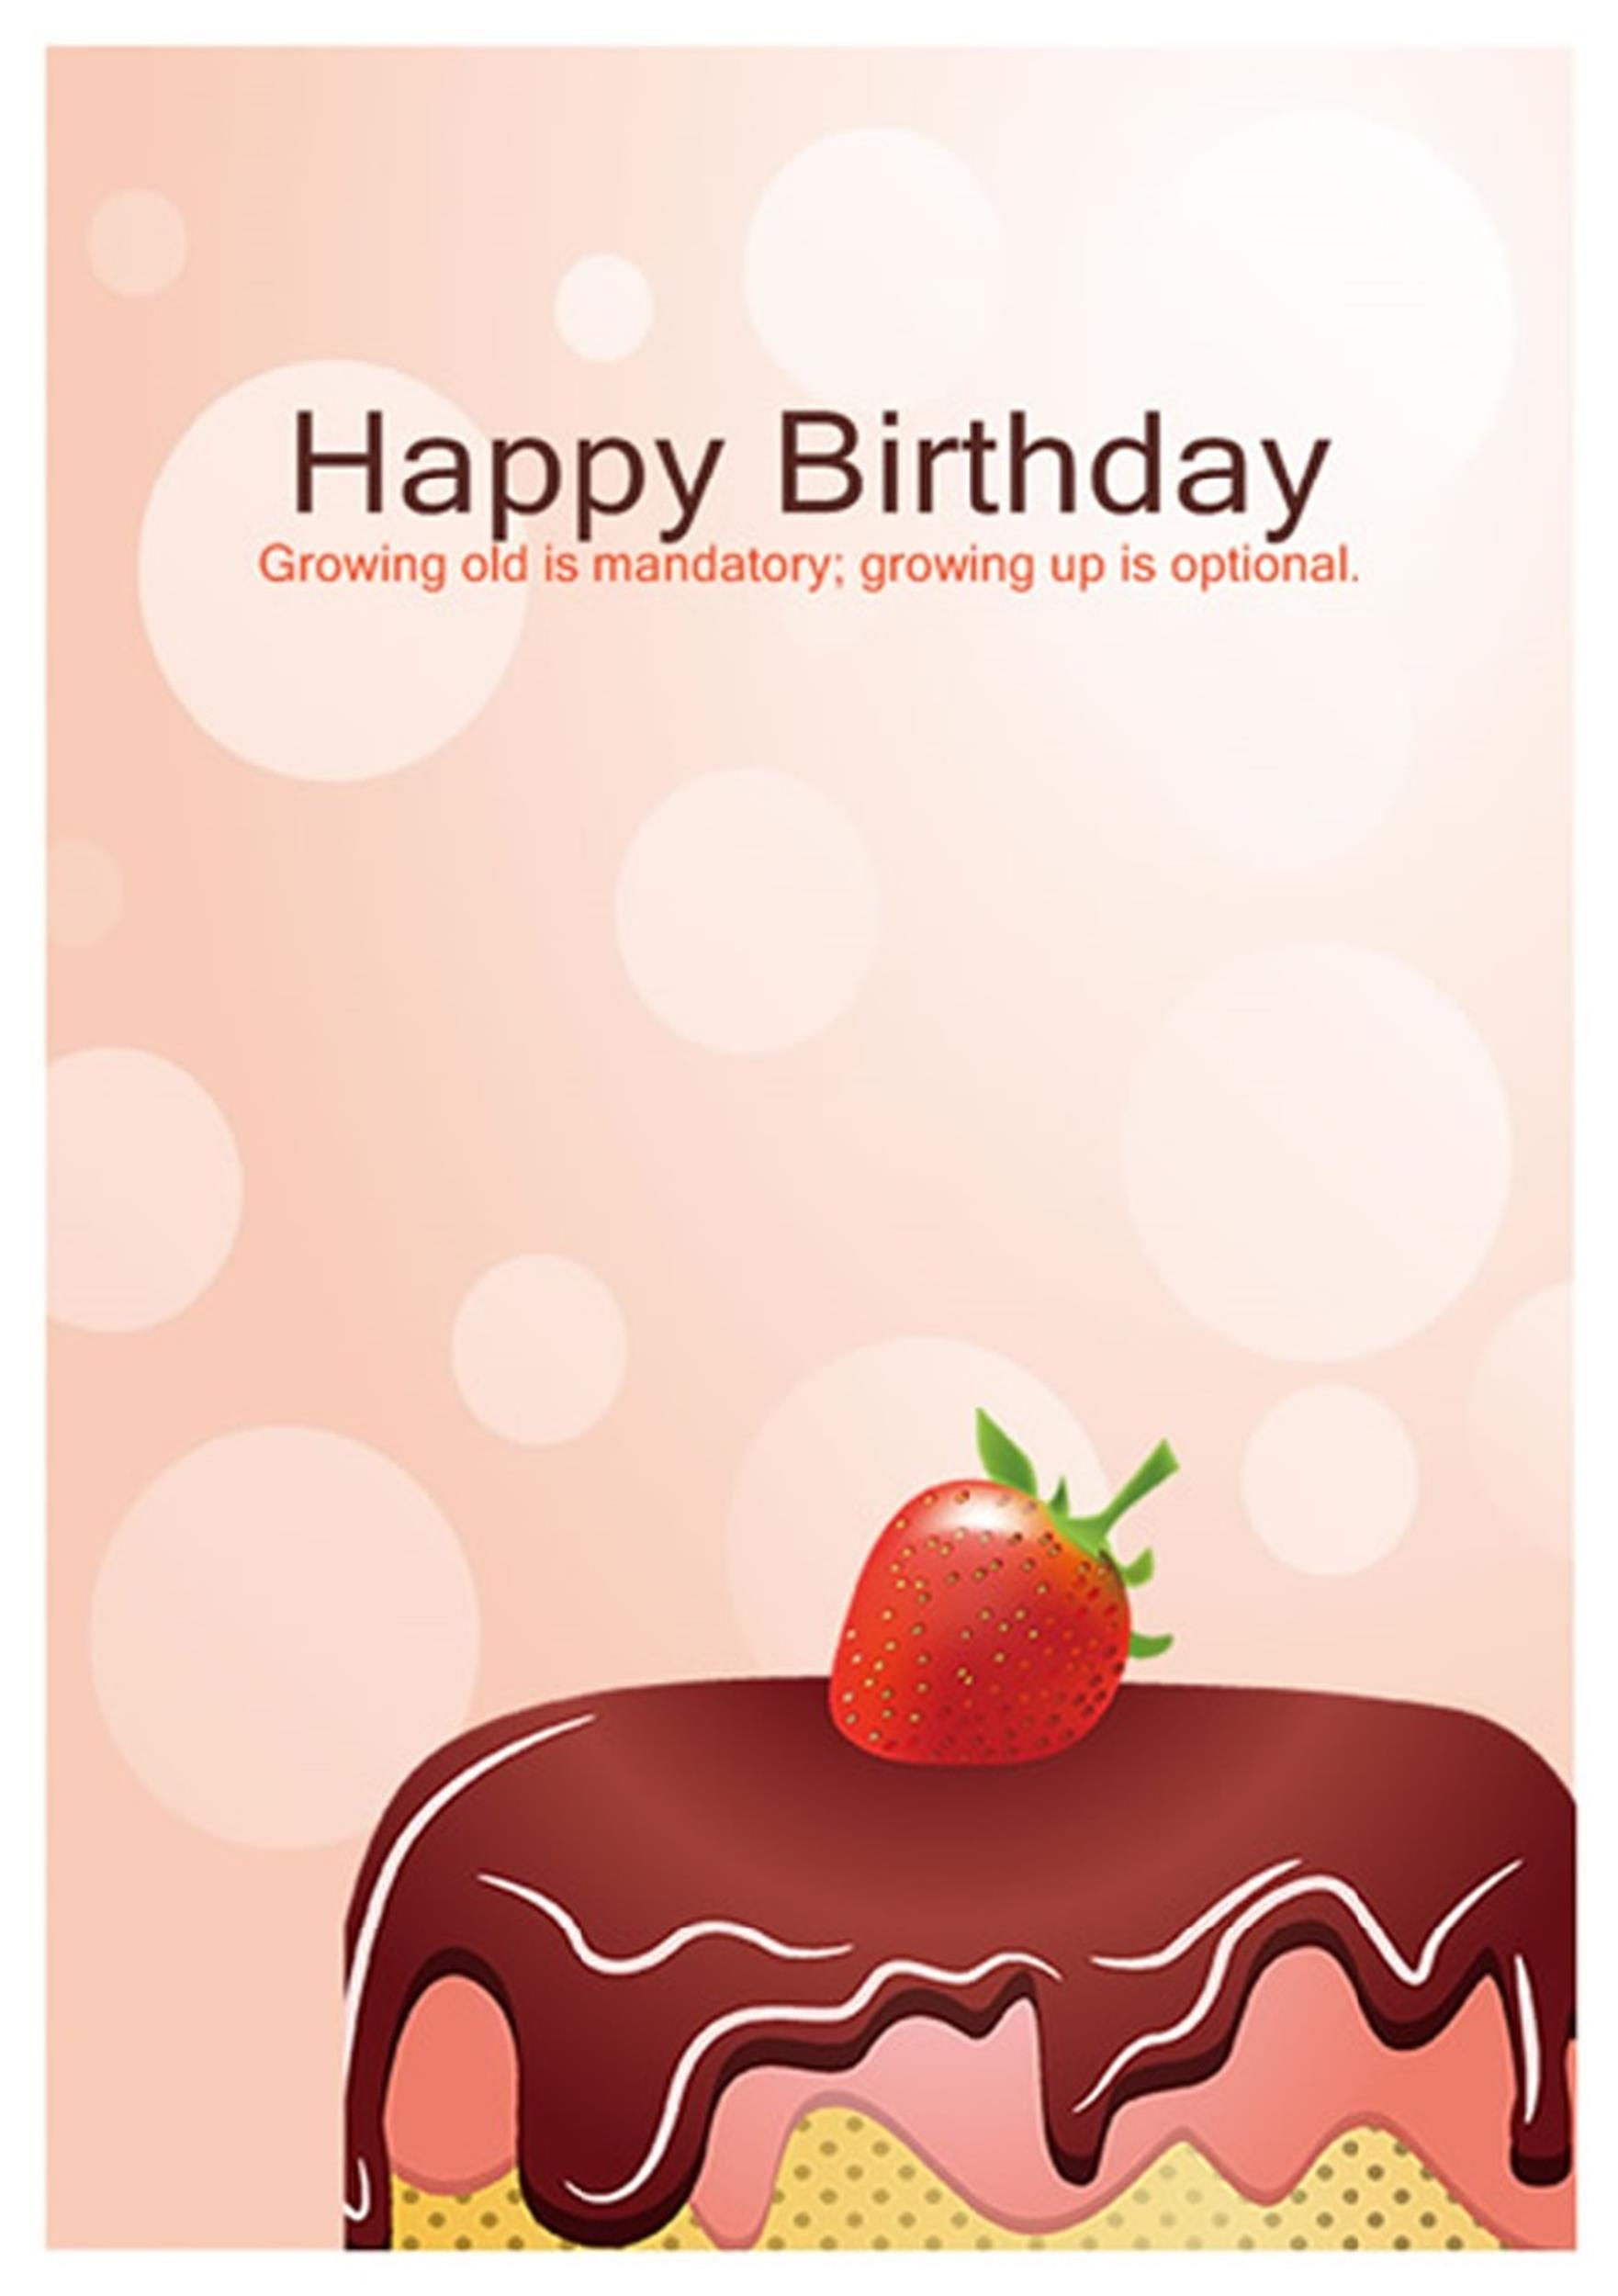 Free Birthday Card Templates